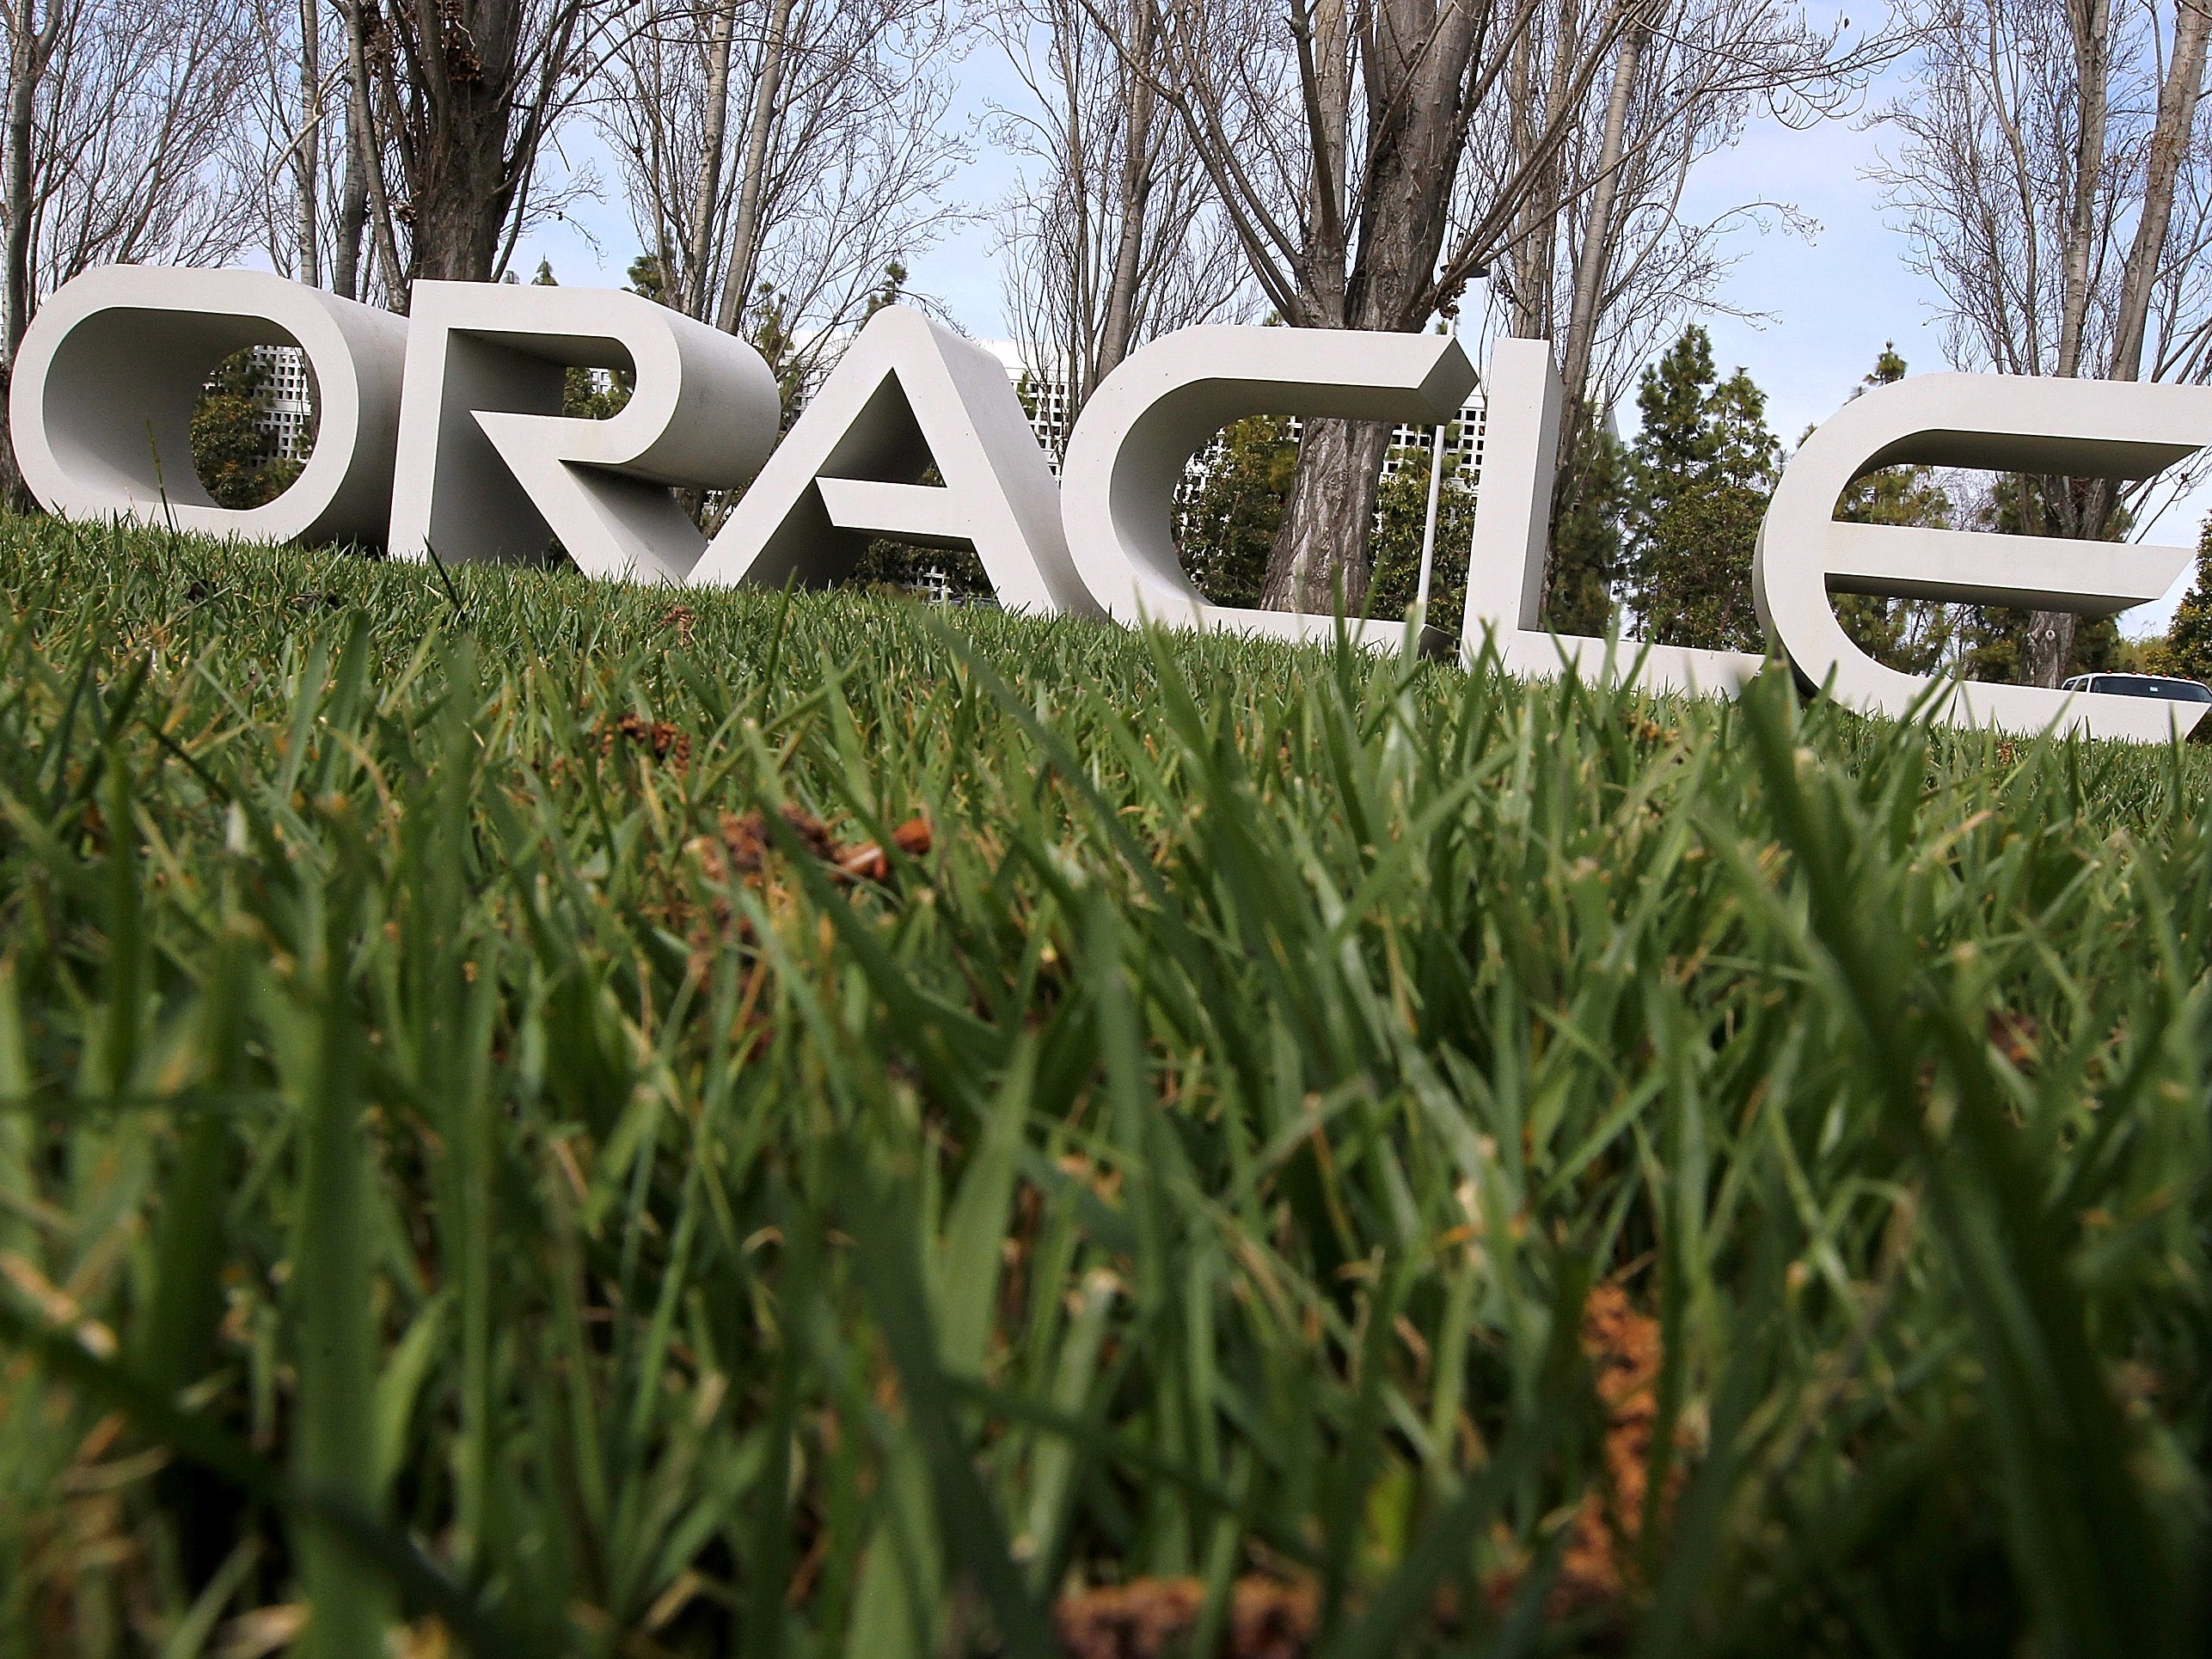 Oracle, hiring 1,100. The company provides cloud applications, platform services and engineered computer systems. The company is adding jobs in Phoenix and Tucson. More info: oracle.com/corporate/careers.